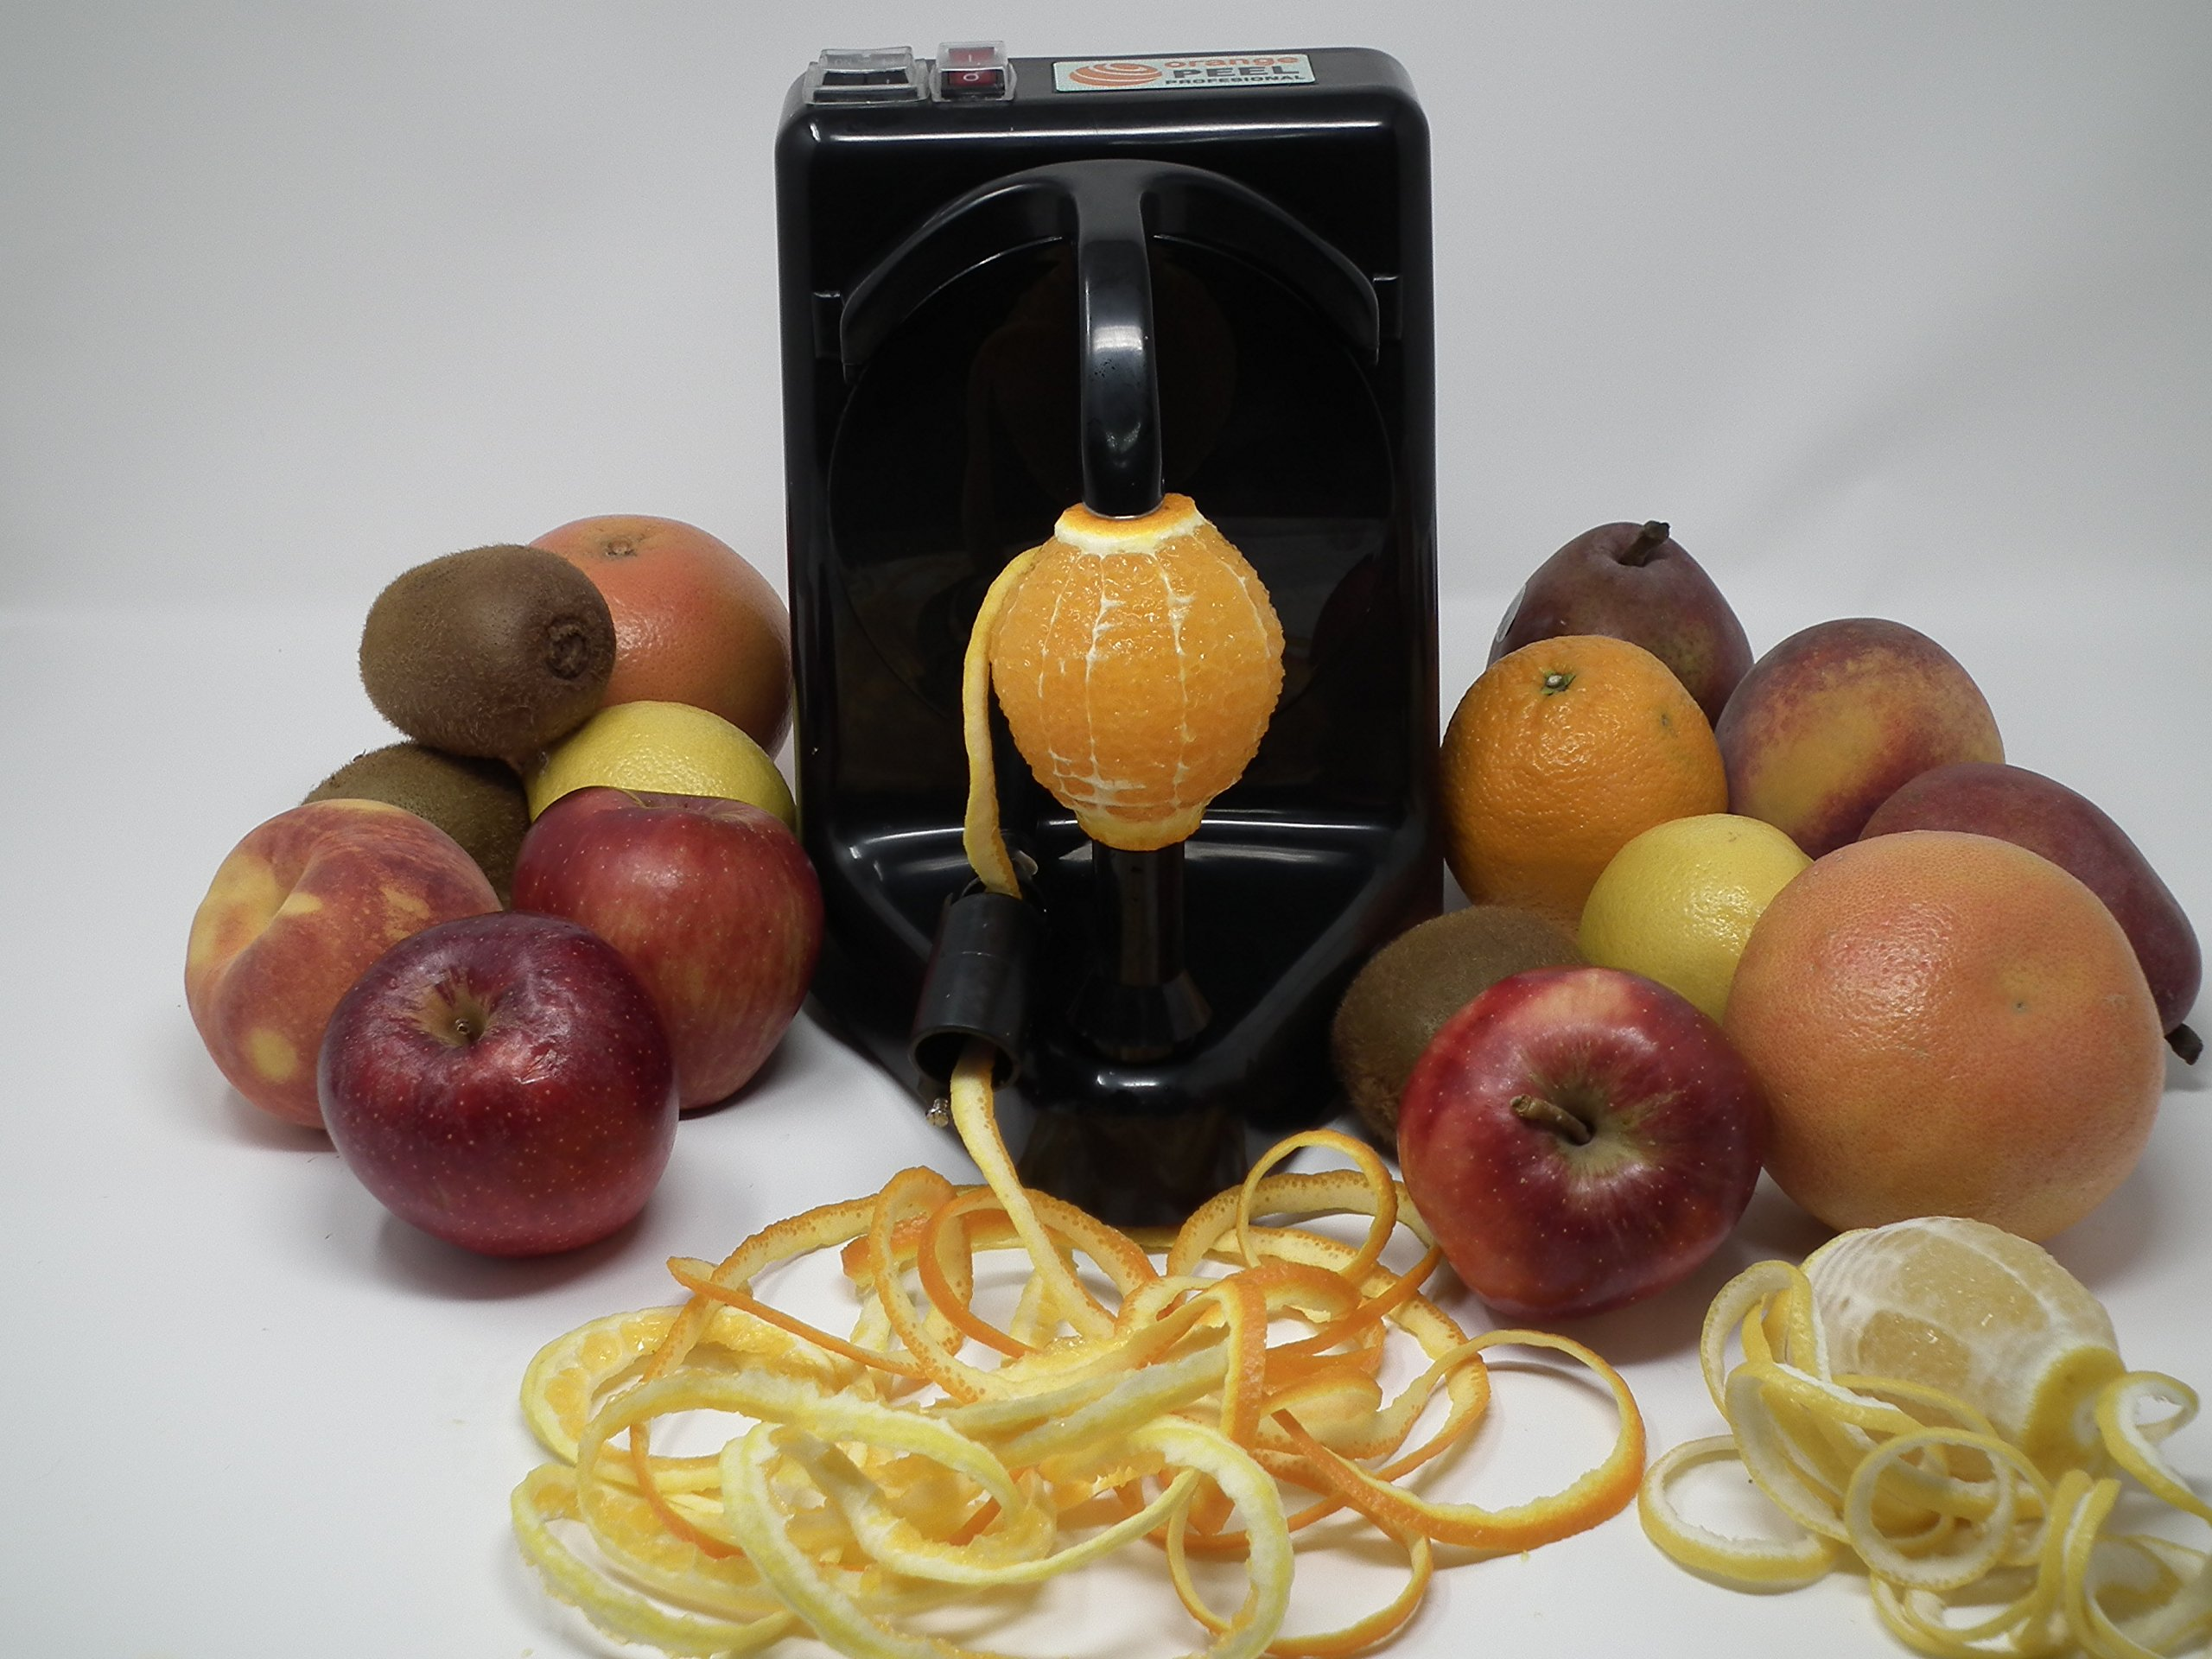 Pelamatic Orange Peeler Pro Black